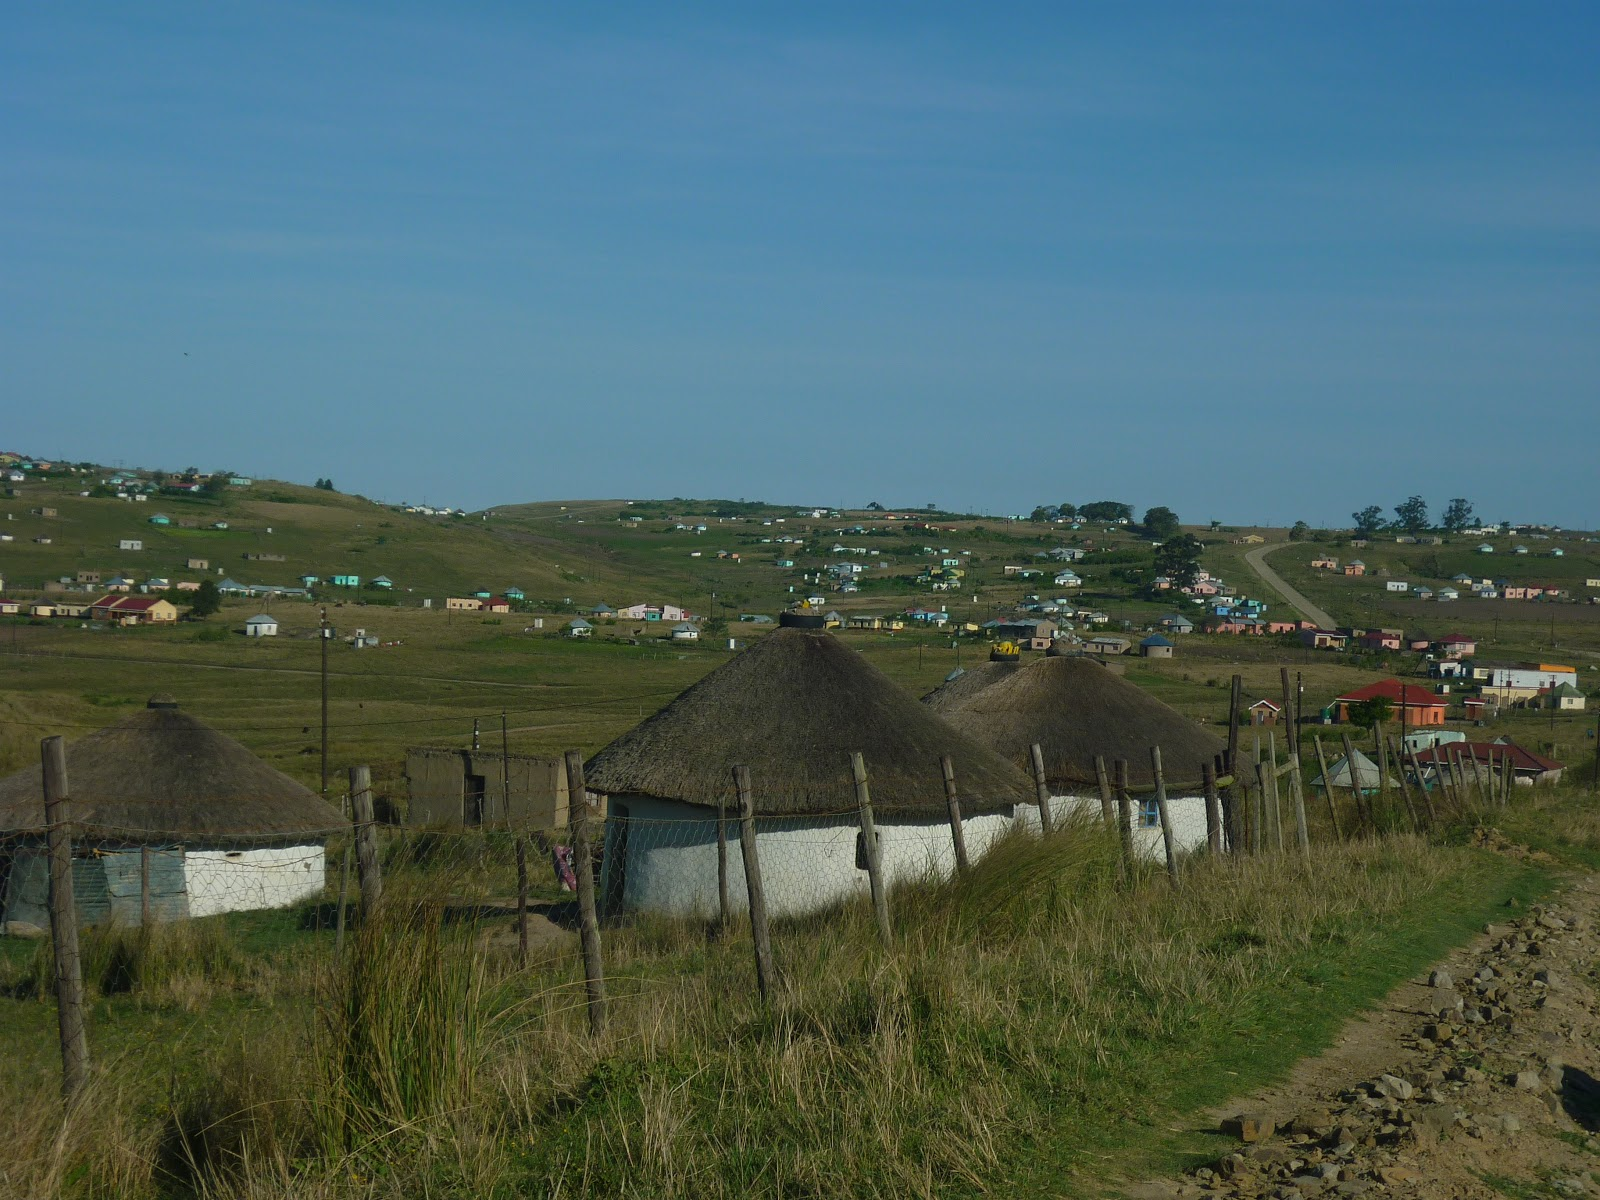 The South African Experience Beautiful Remote Transkei